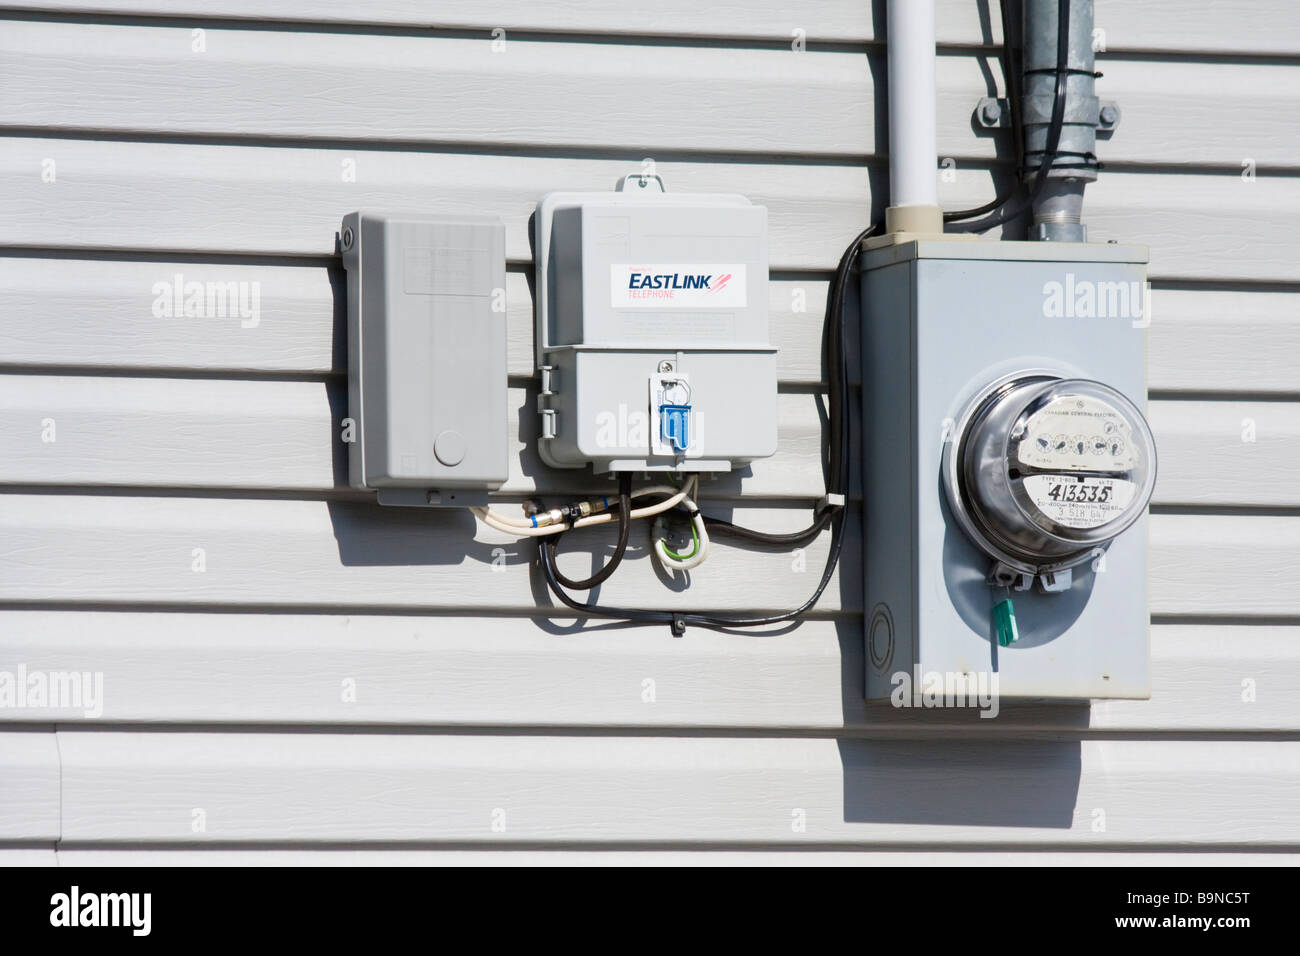 Electricity meter and cable box in Halifax, Nova Scotia, Canada - Stock Image